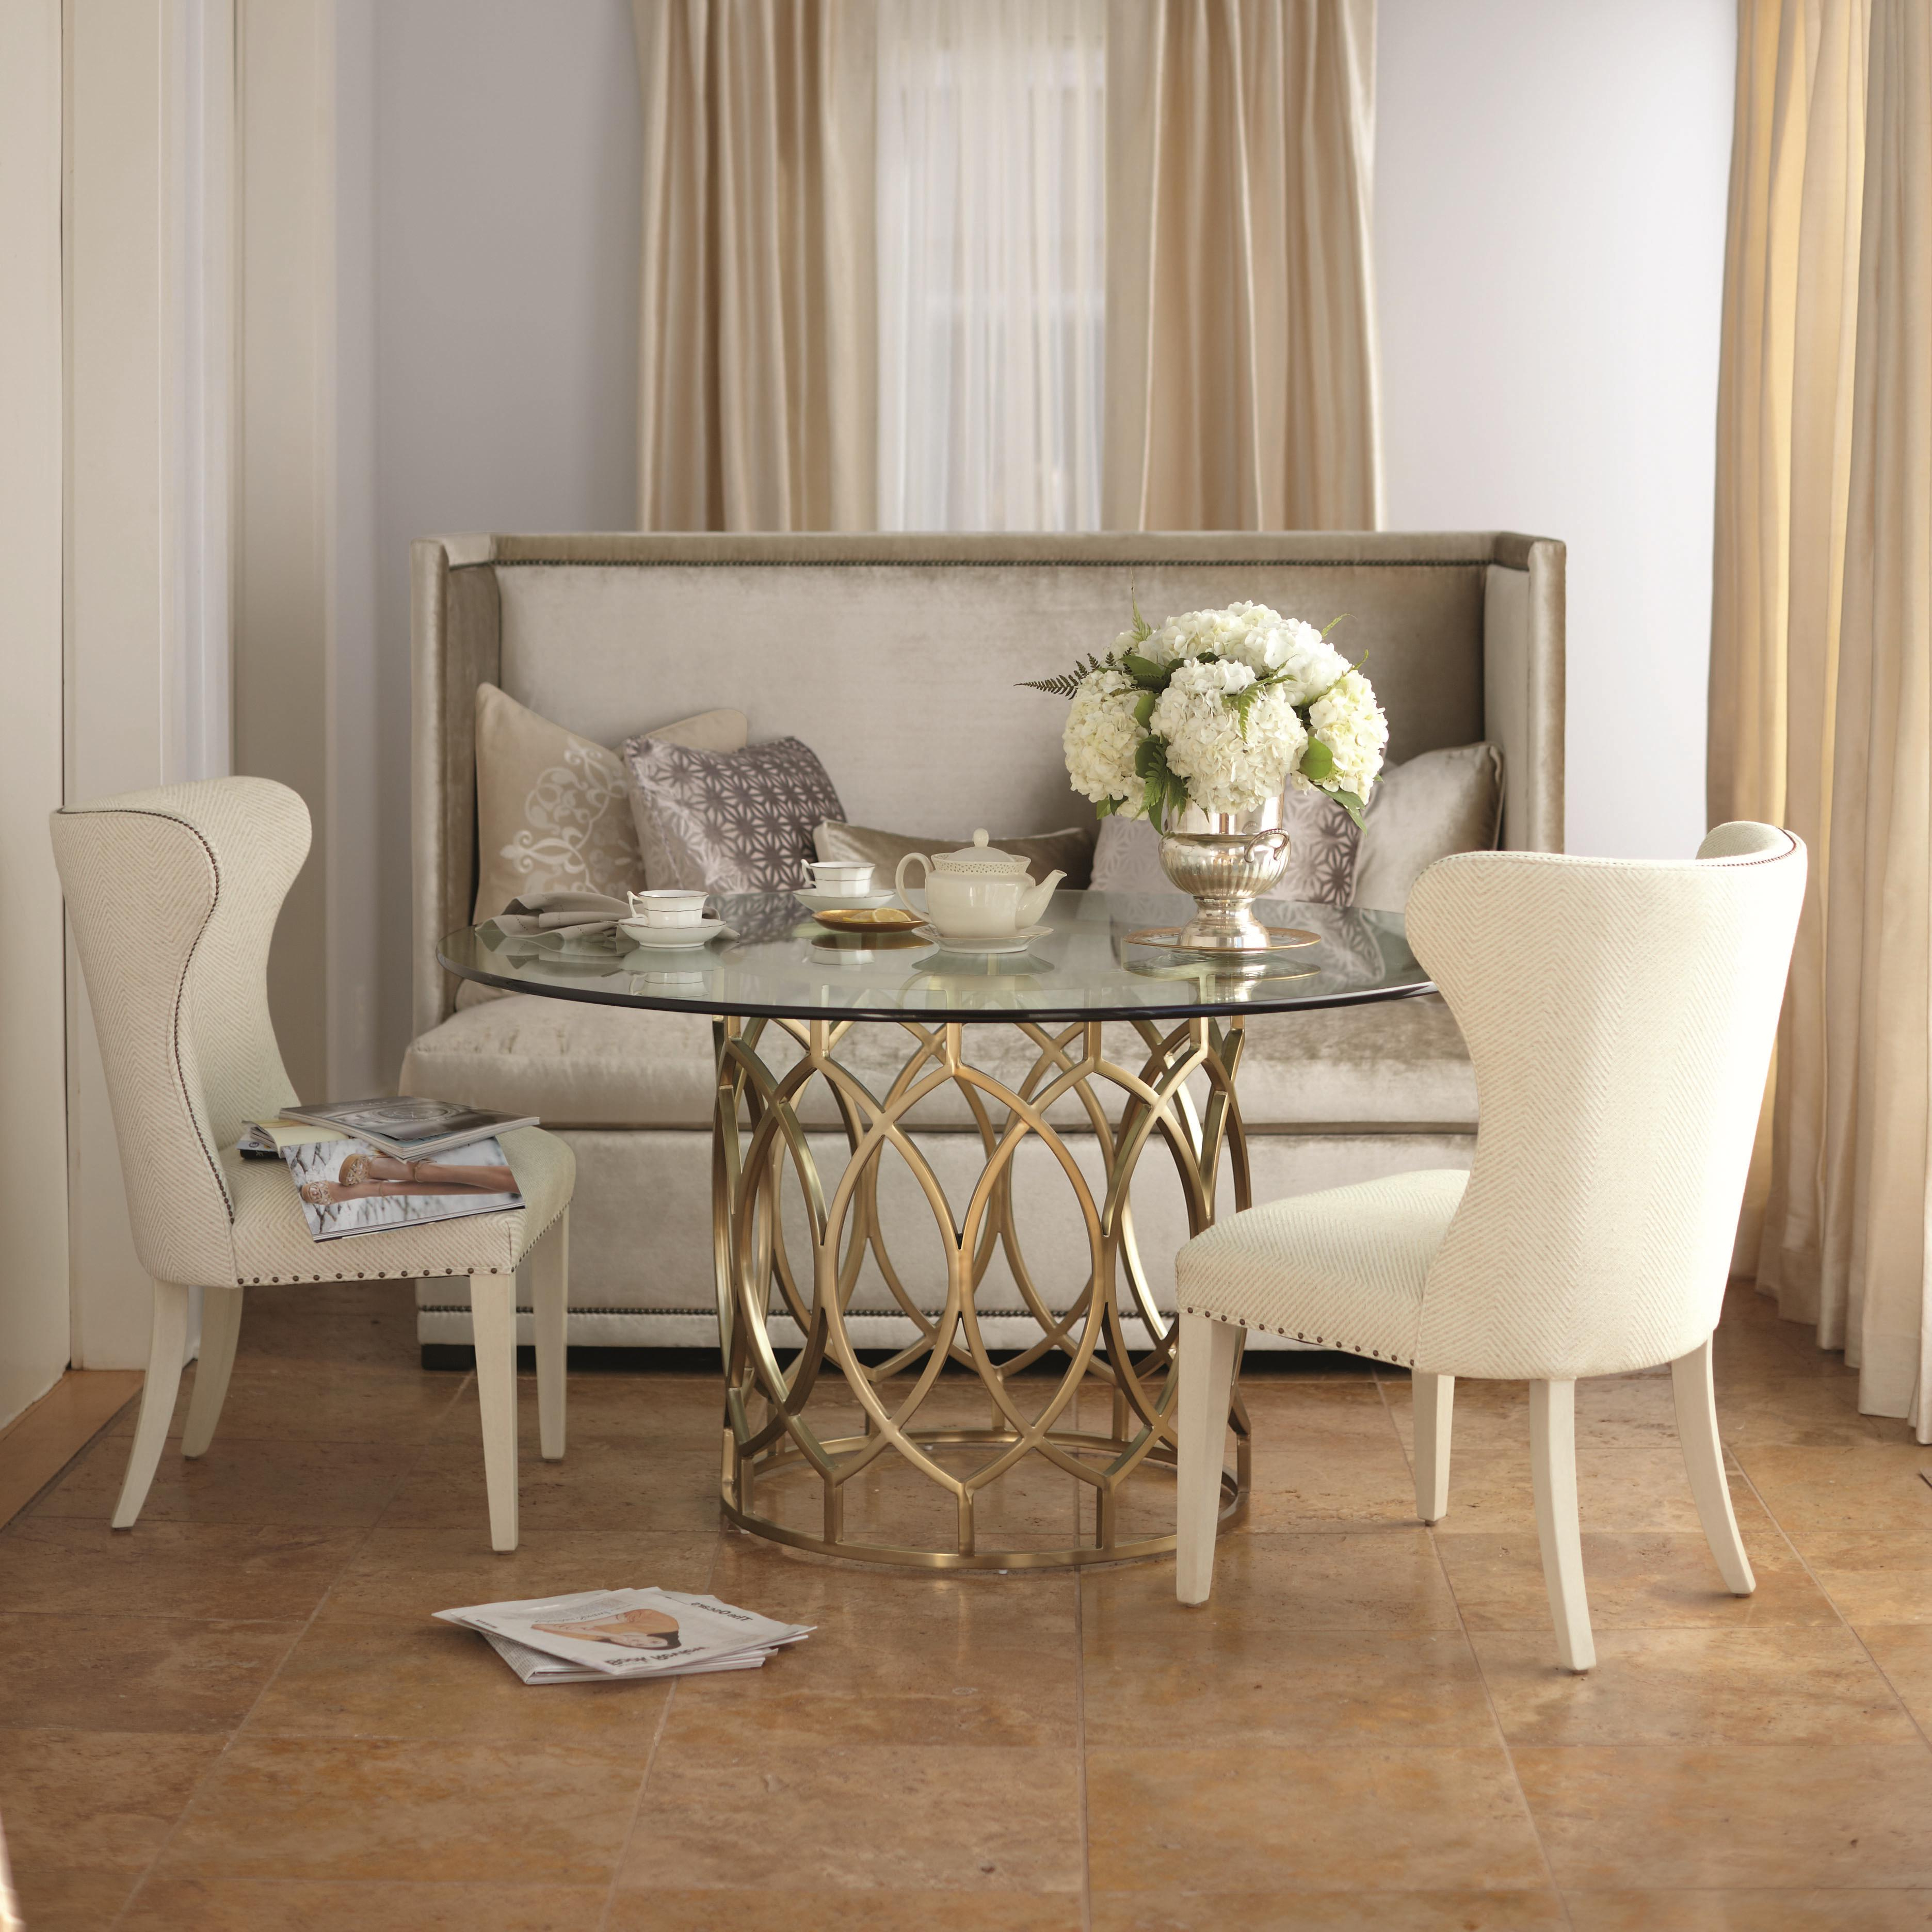 Preferred Salon 3 Piece Dining Set With Round Glass Top Tablebernhardt At Dunk & Bright Furniture With 3 Piece Dining Sets (View 5 of 20)